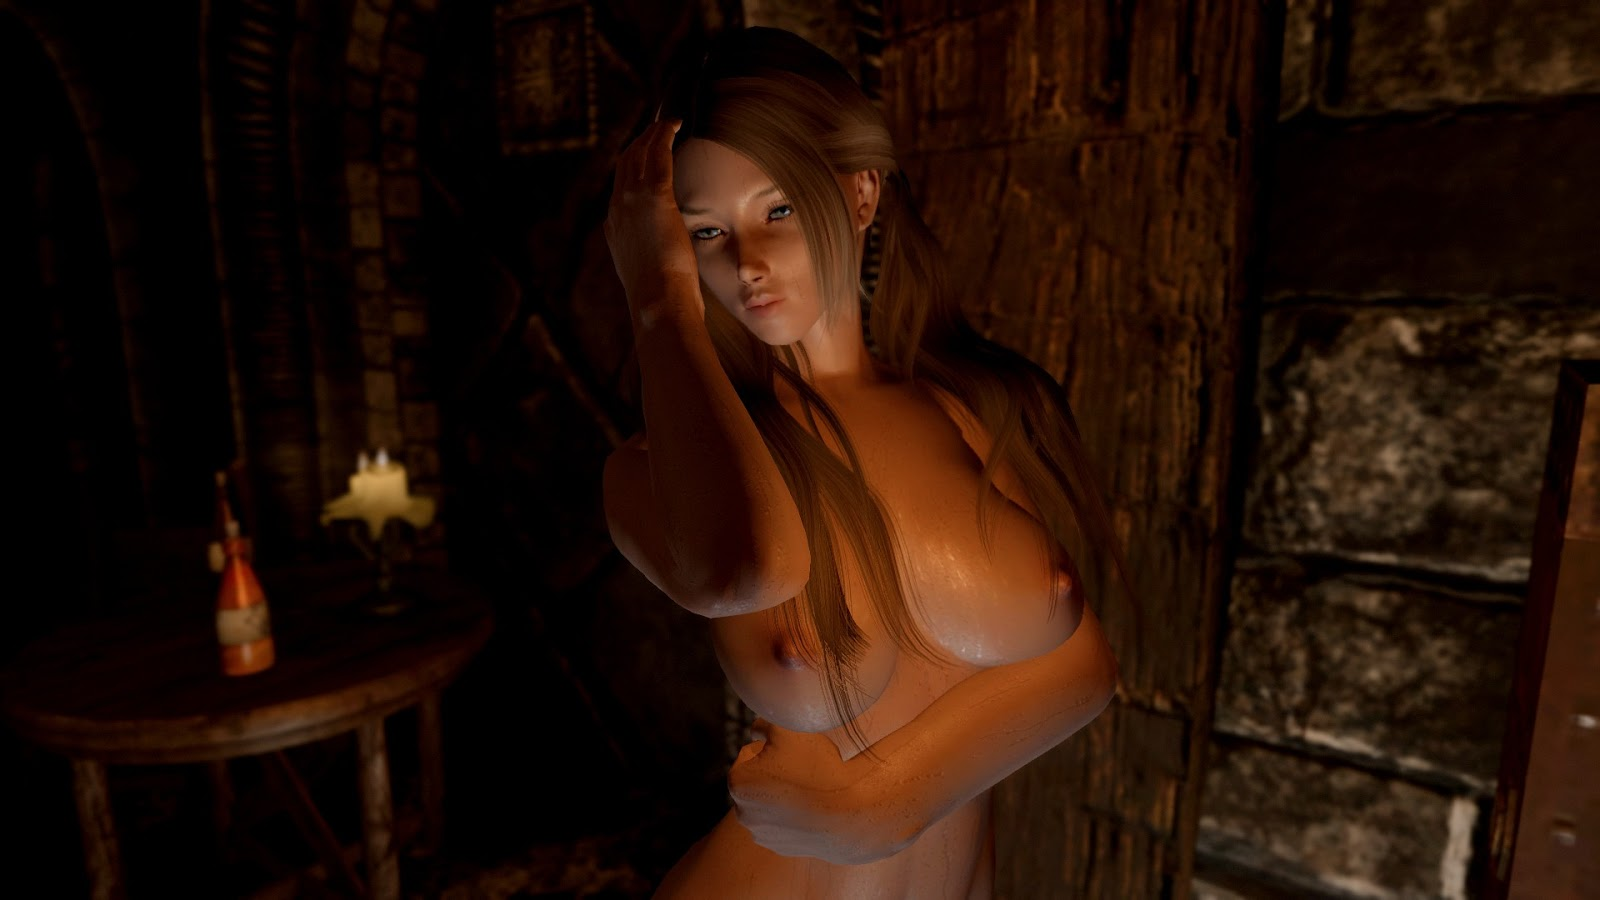 Skyrim nude models hentia video